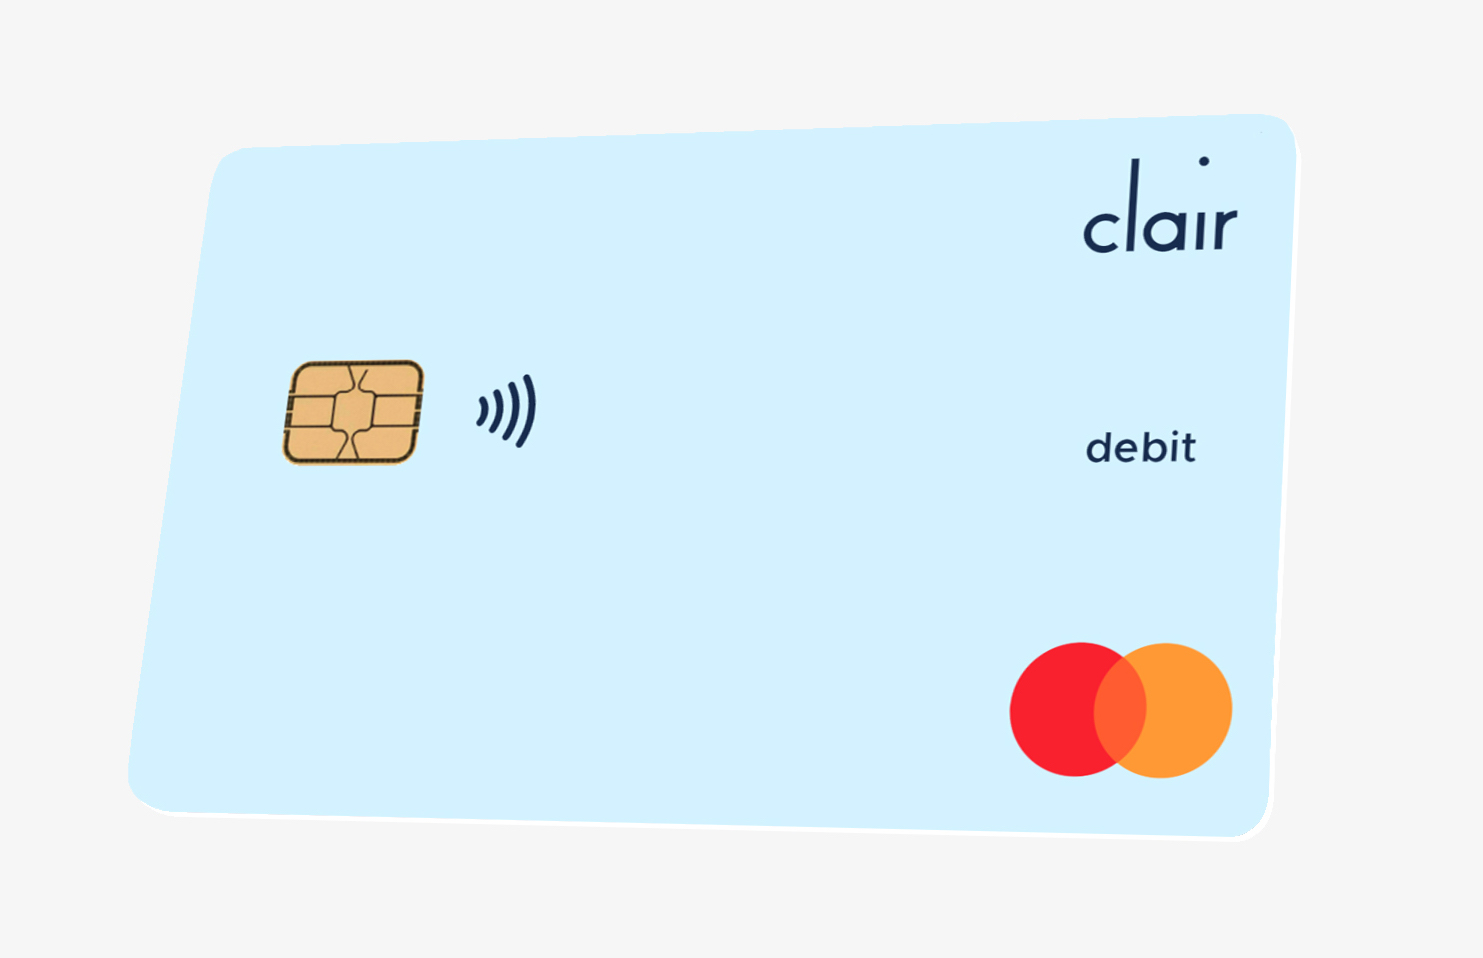 Fintech Clair taps Mastercard to launch debit card offering free wage advances